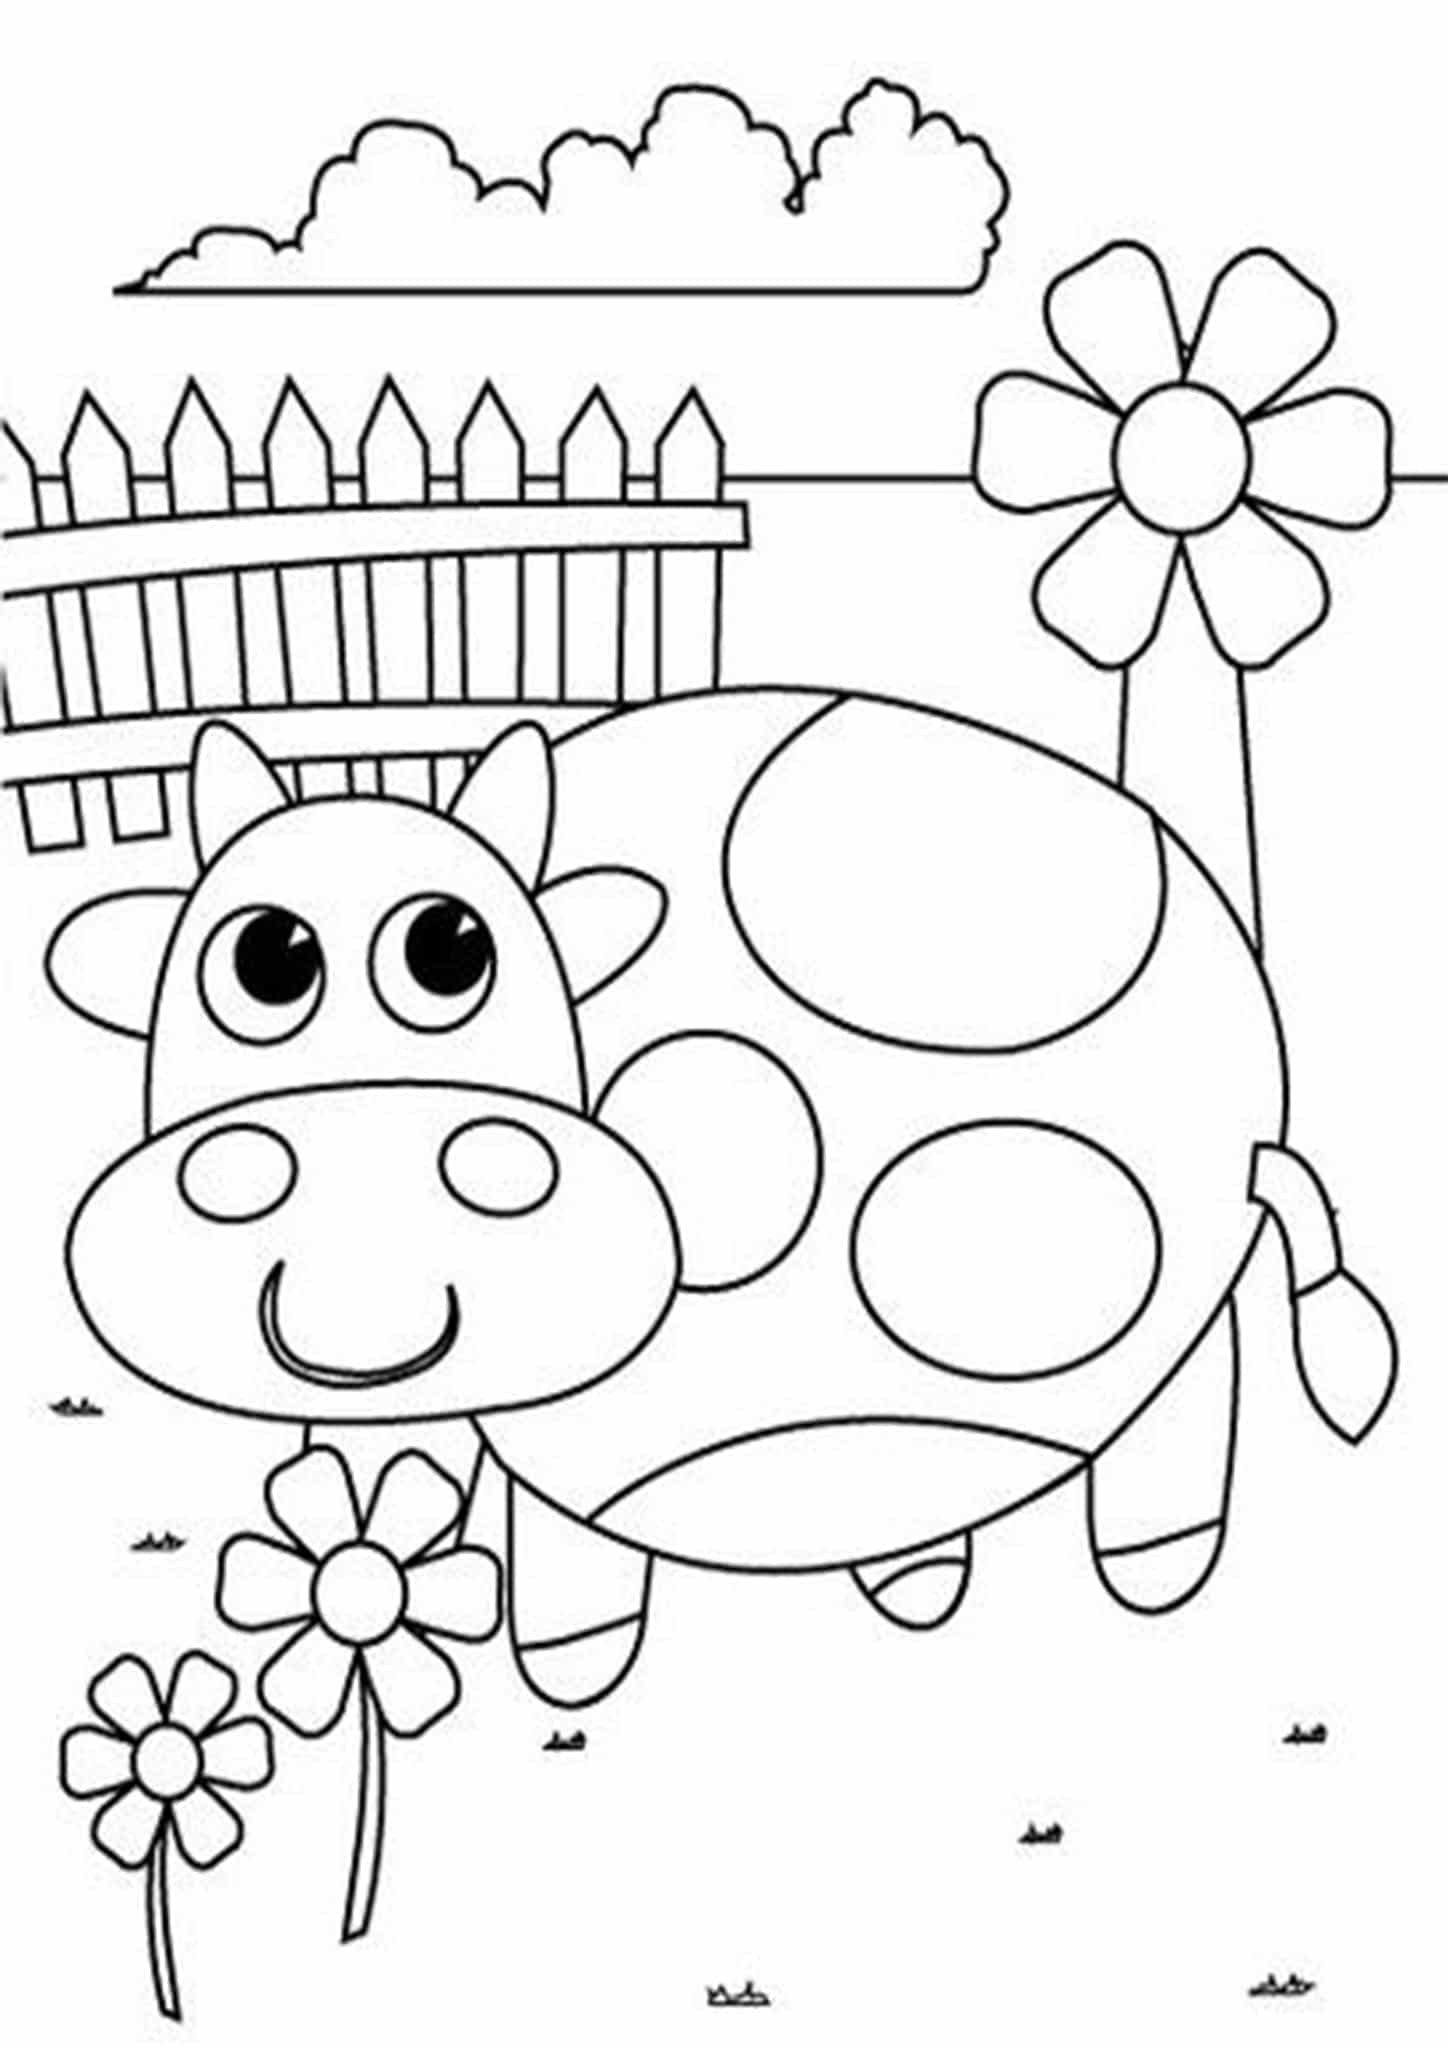 Free Easy To Print Cute Coloring Pages In 2021 Kindergarten Coloring Pages Spring Coloring Pages Kindergarten Coloring Sheets